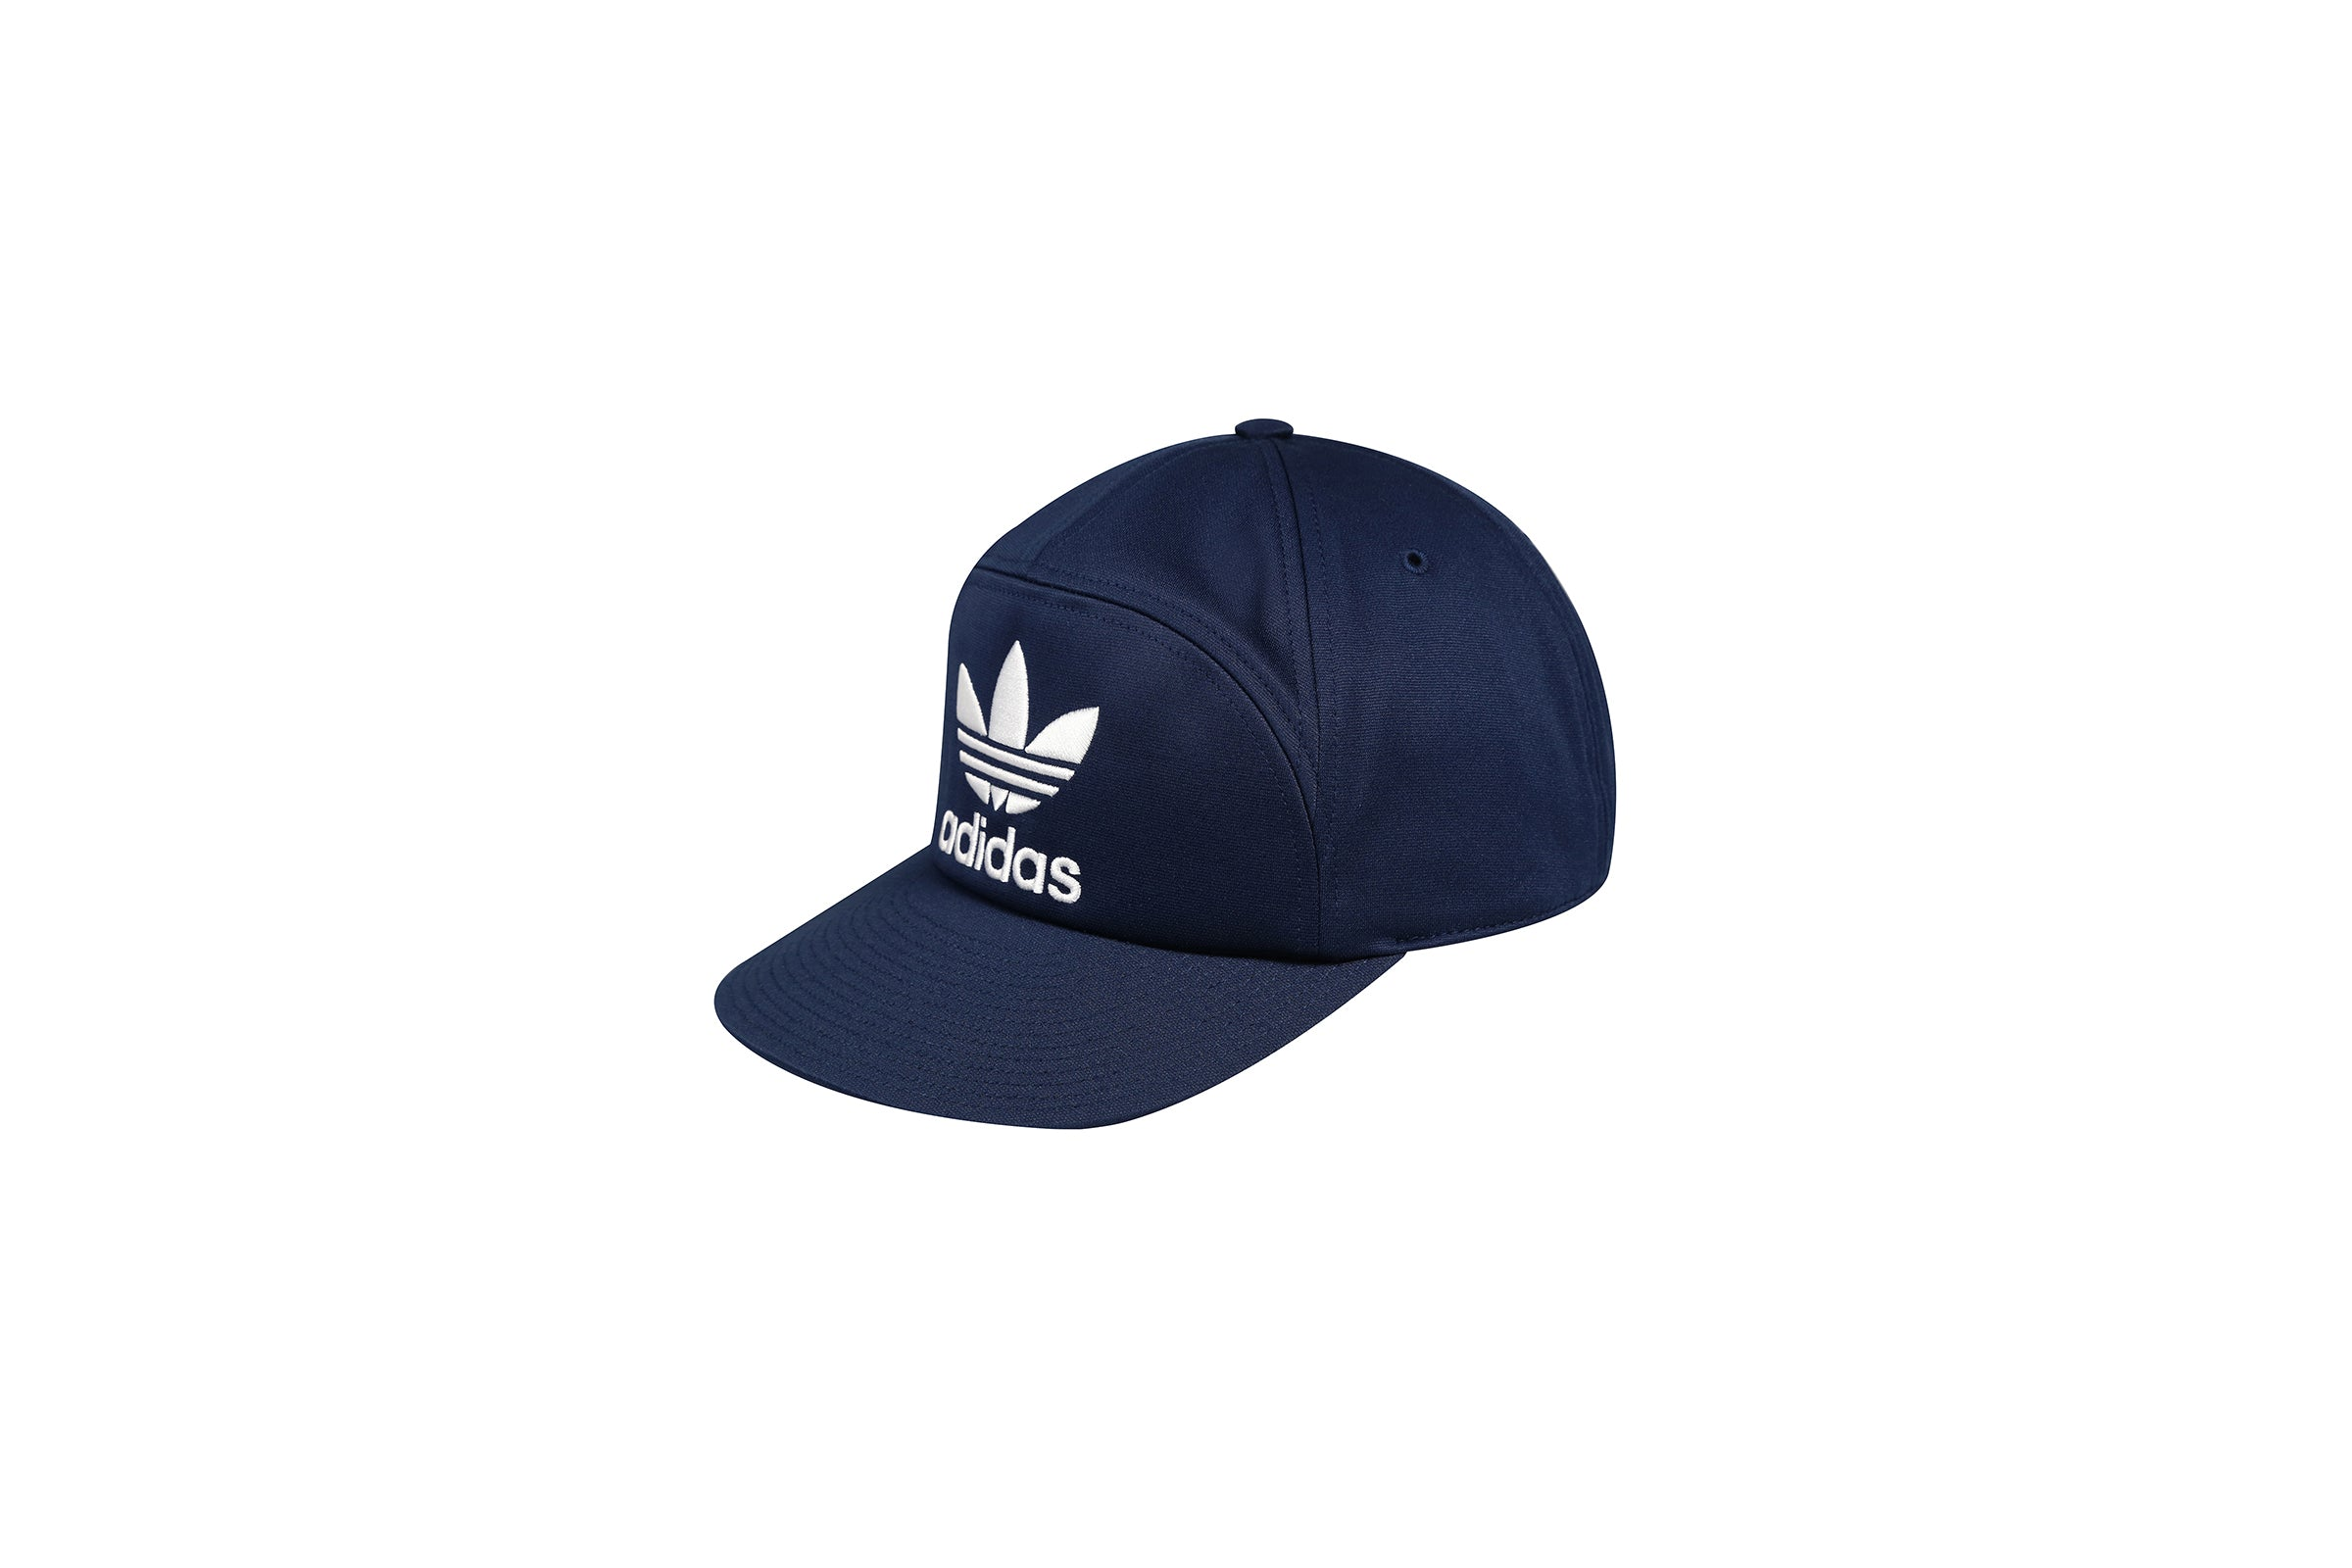 Adidas Ball Cap x Human Made